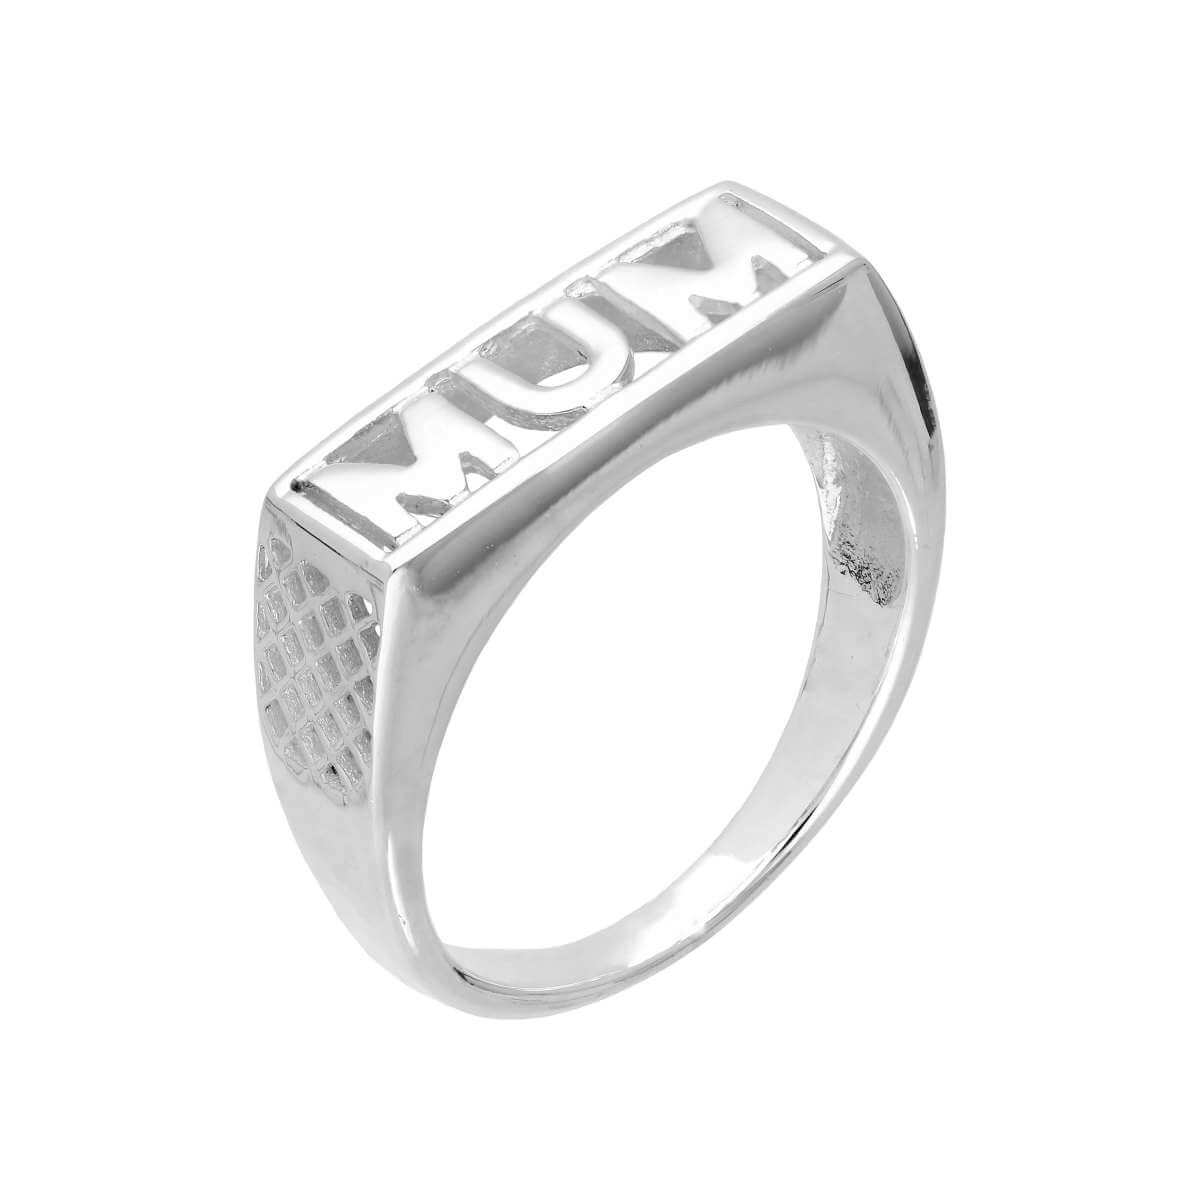 Sterling Silver Mum Ring Sizes I - W